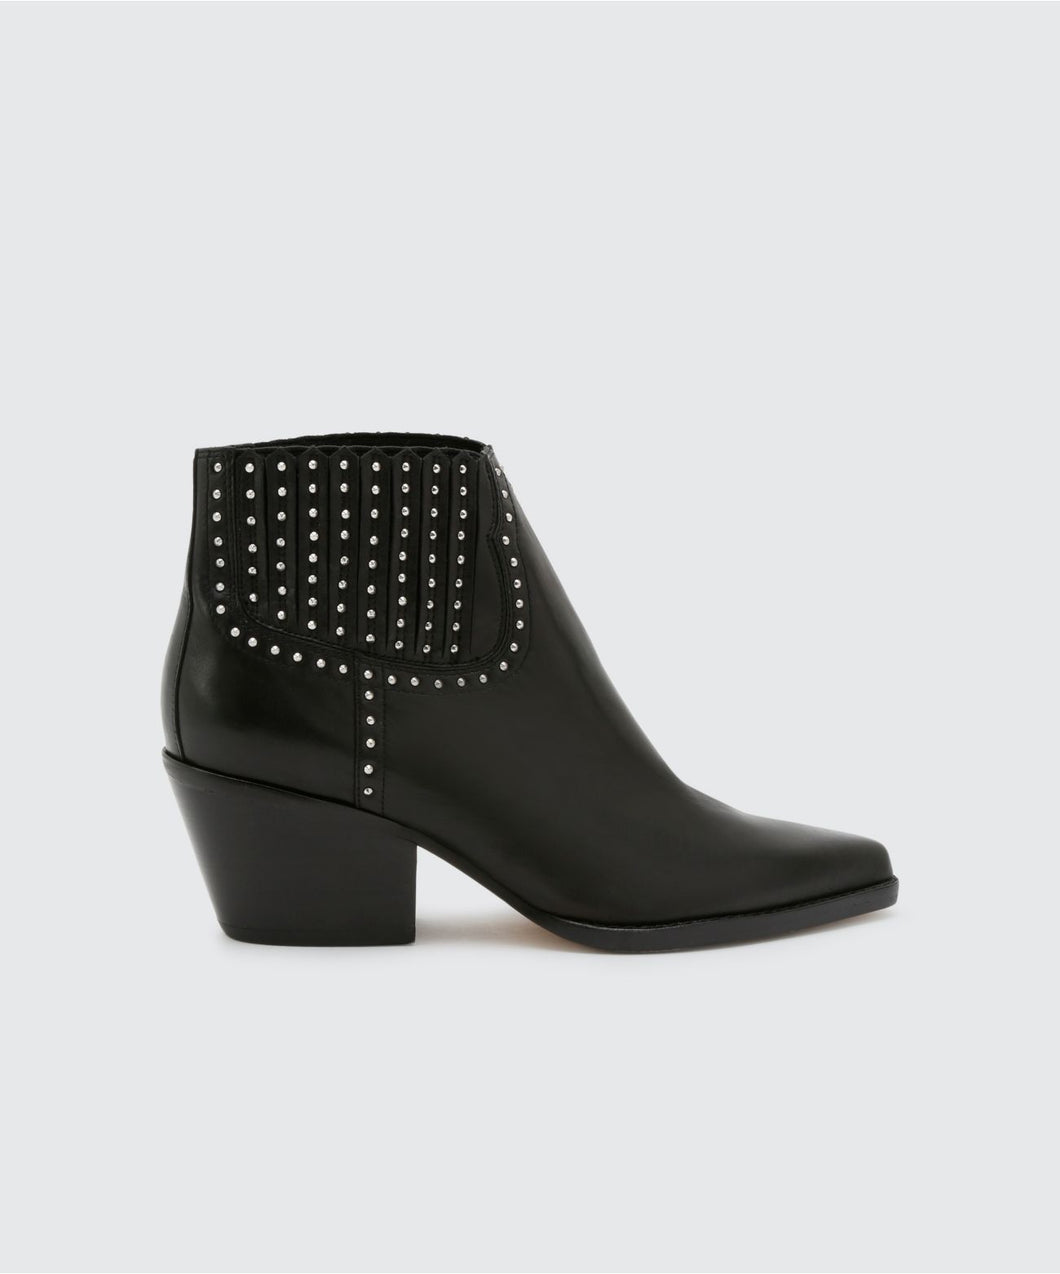 SETHE BOOTIES IN BLACK -   Dolce Vita